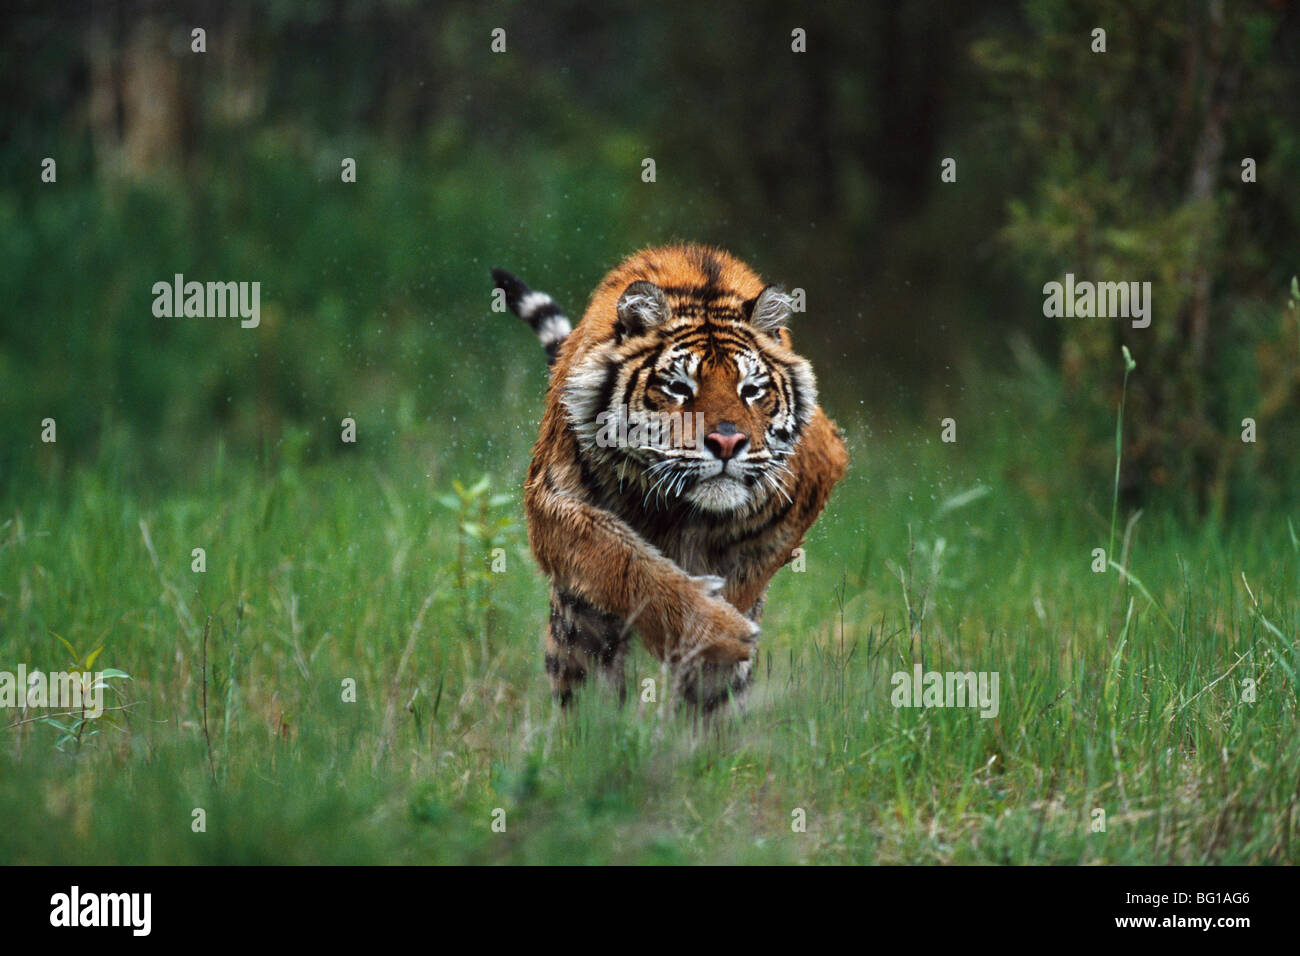 Charge Wet Siberian Tiger Photo Stock